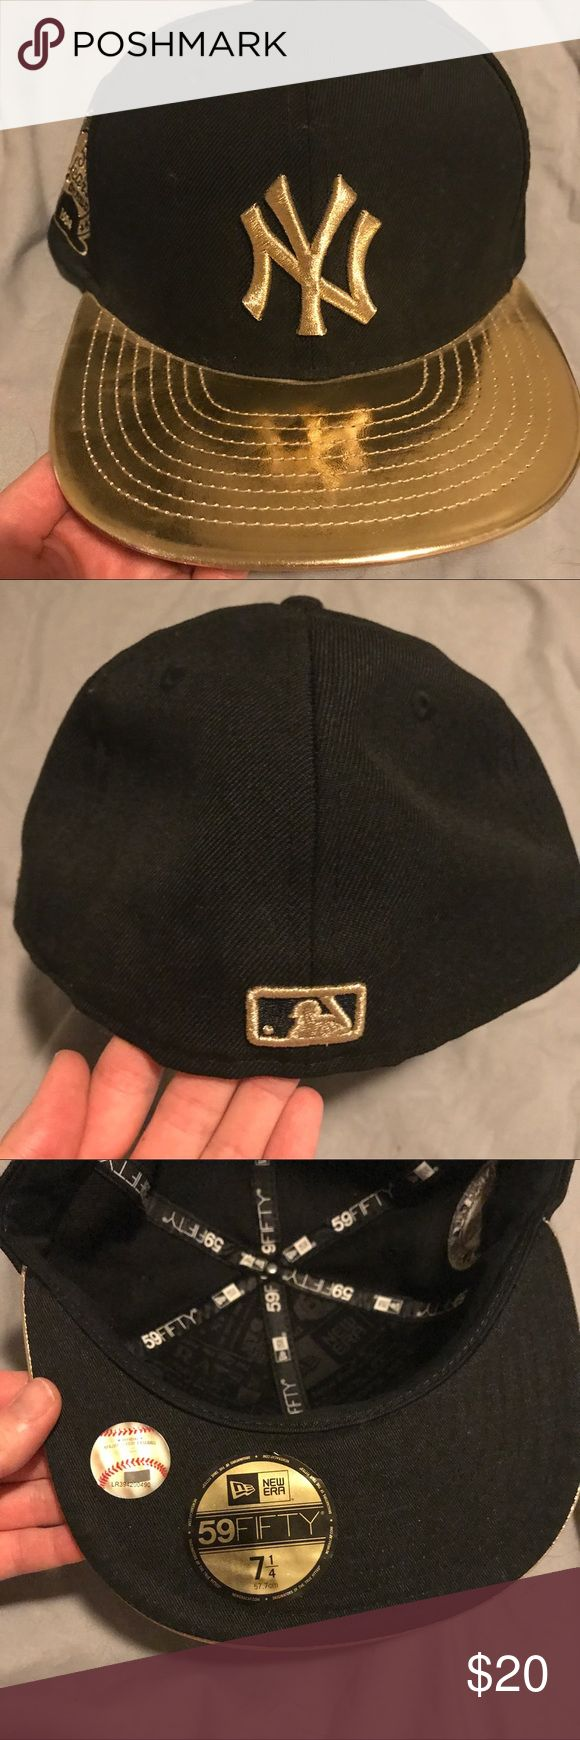 New Era Black & Gold New York Yankees Baseball Cap New Era Yankees baseball cap. Size 7 1/4. 59fifty. New Era Accessories Hats